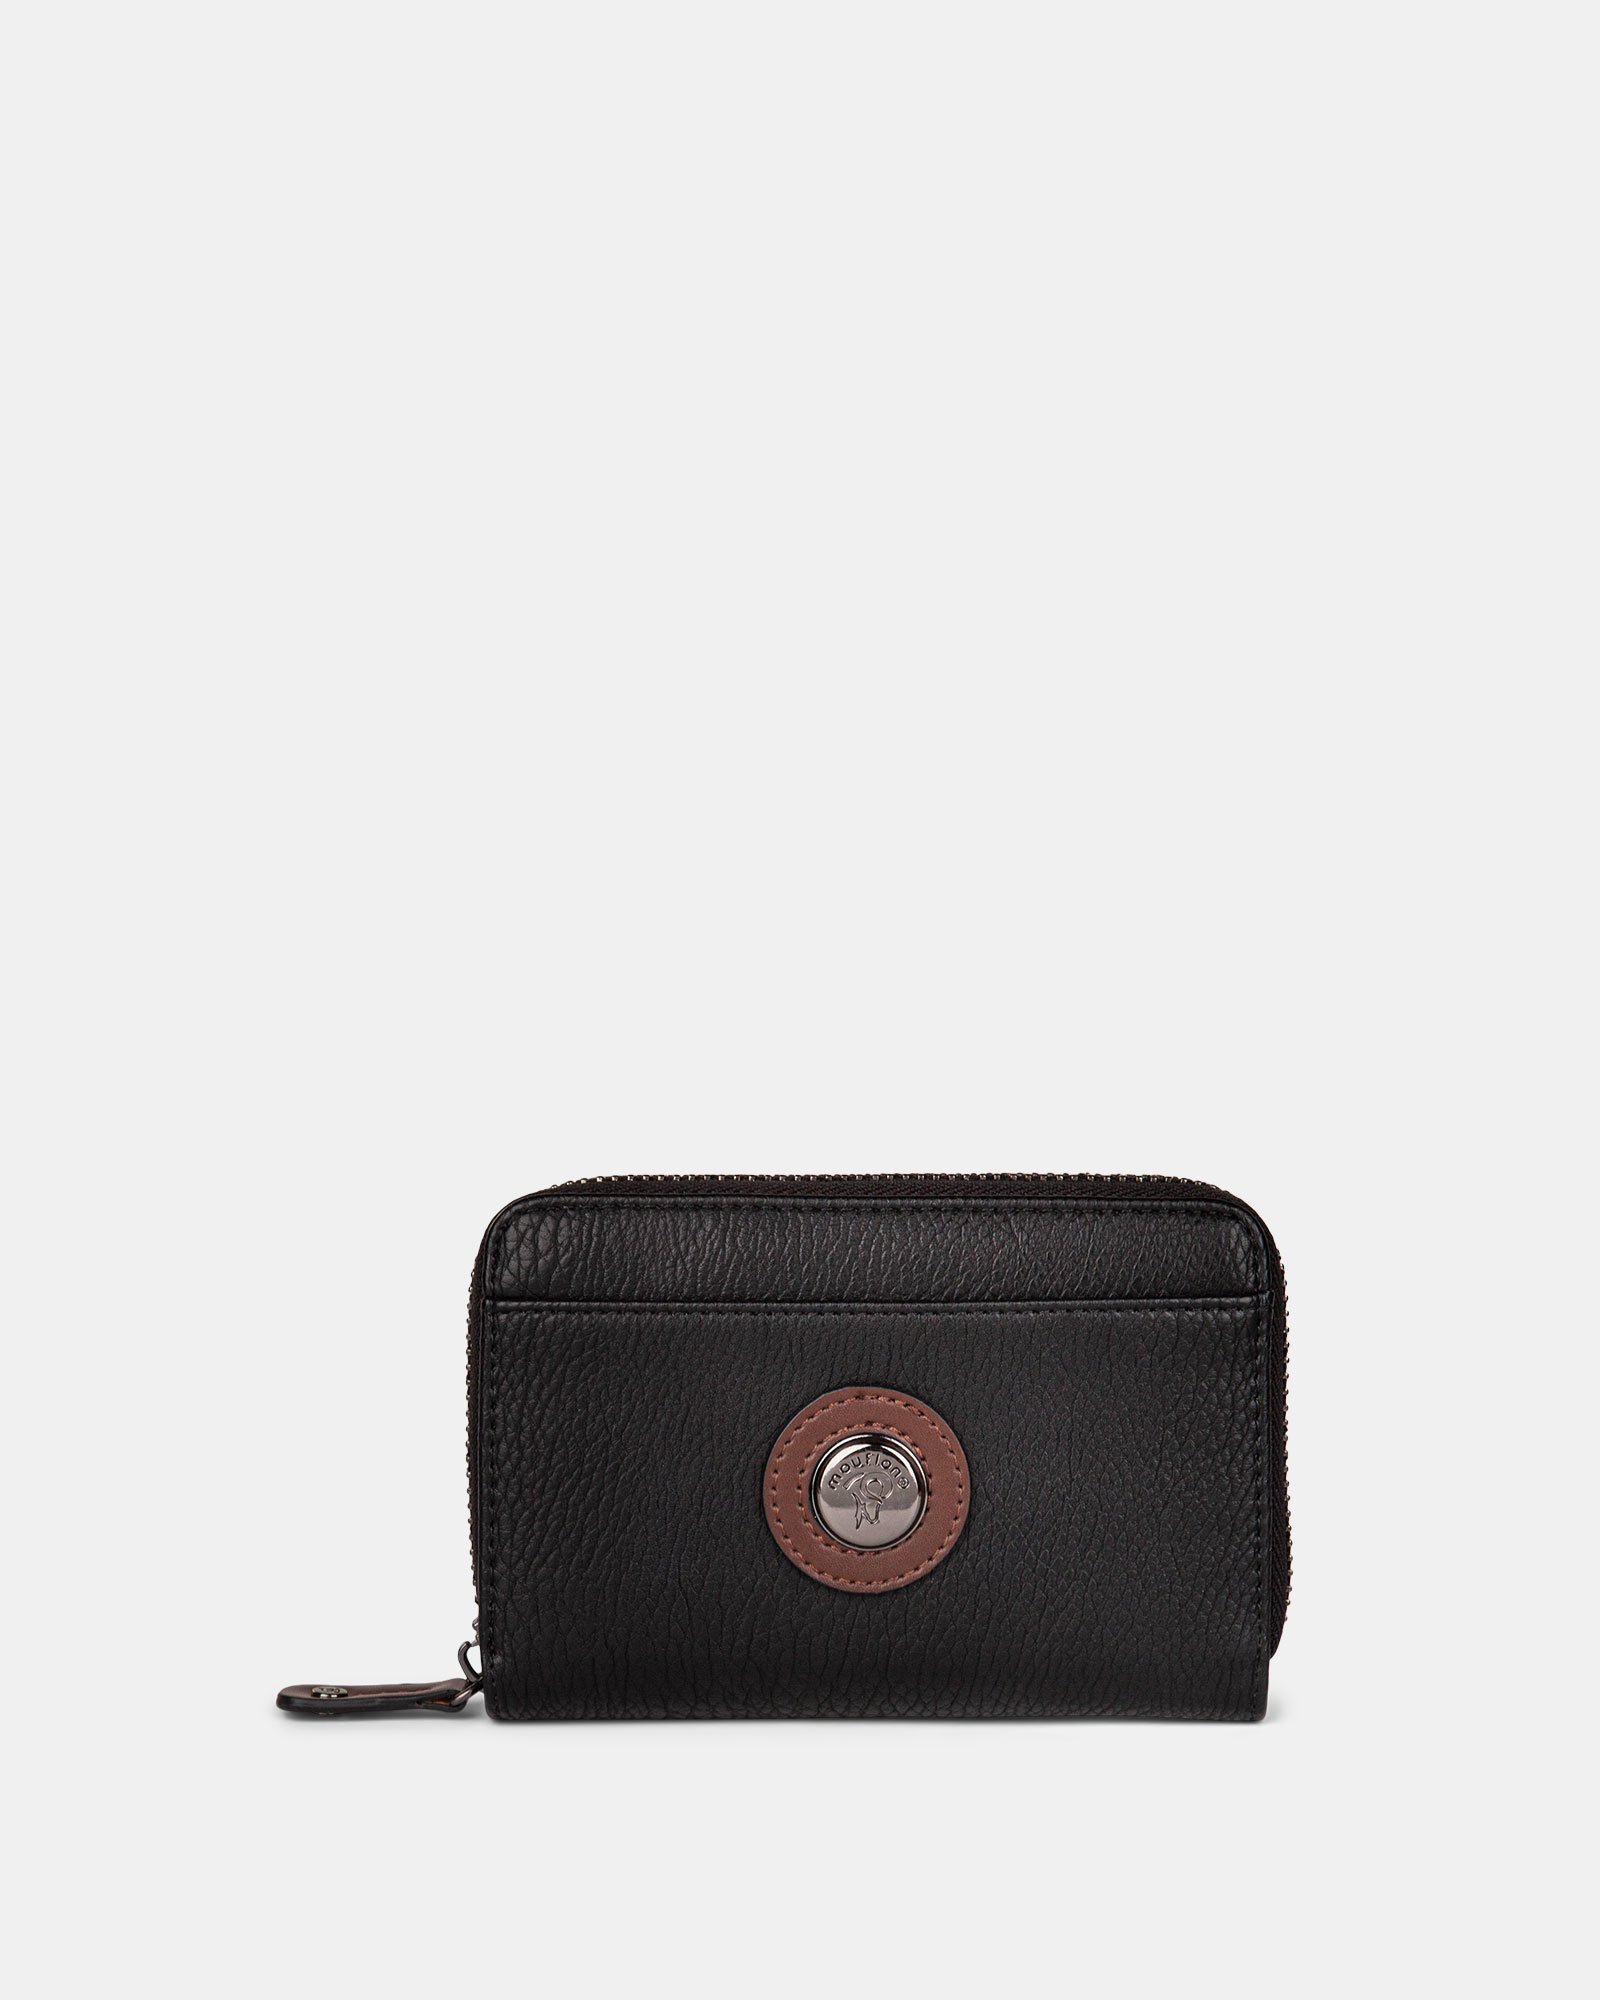 ORIGINAL - LEATHER LIKE WALLET with Zip aound wallet - BLACK / BROWN - Mouflon - Zoom